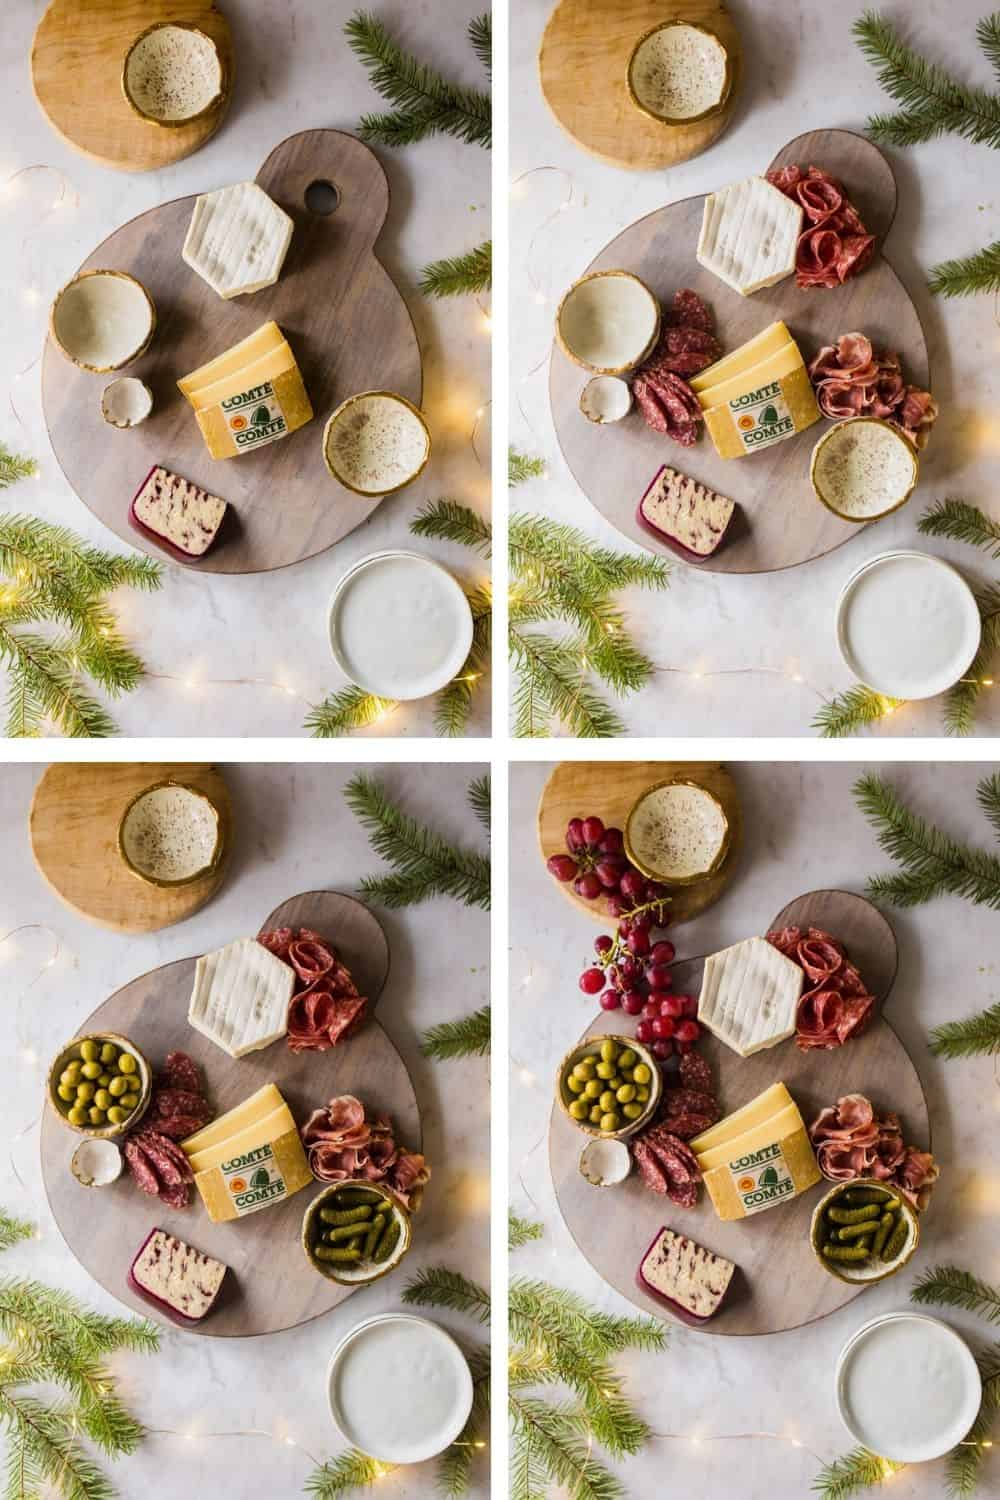 4 images showing how to layer cheese, meat, and fruit on a charcuterie board